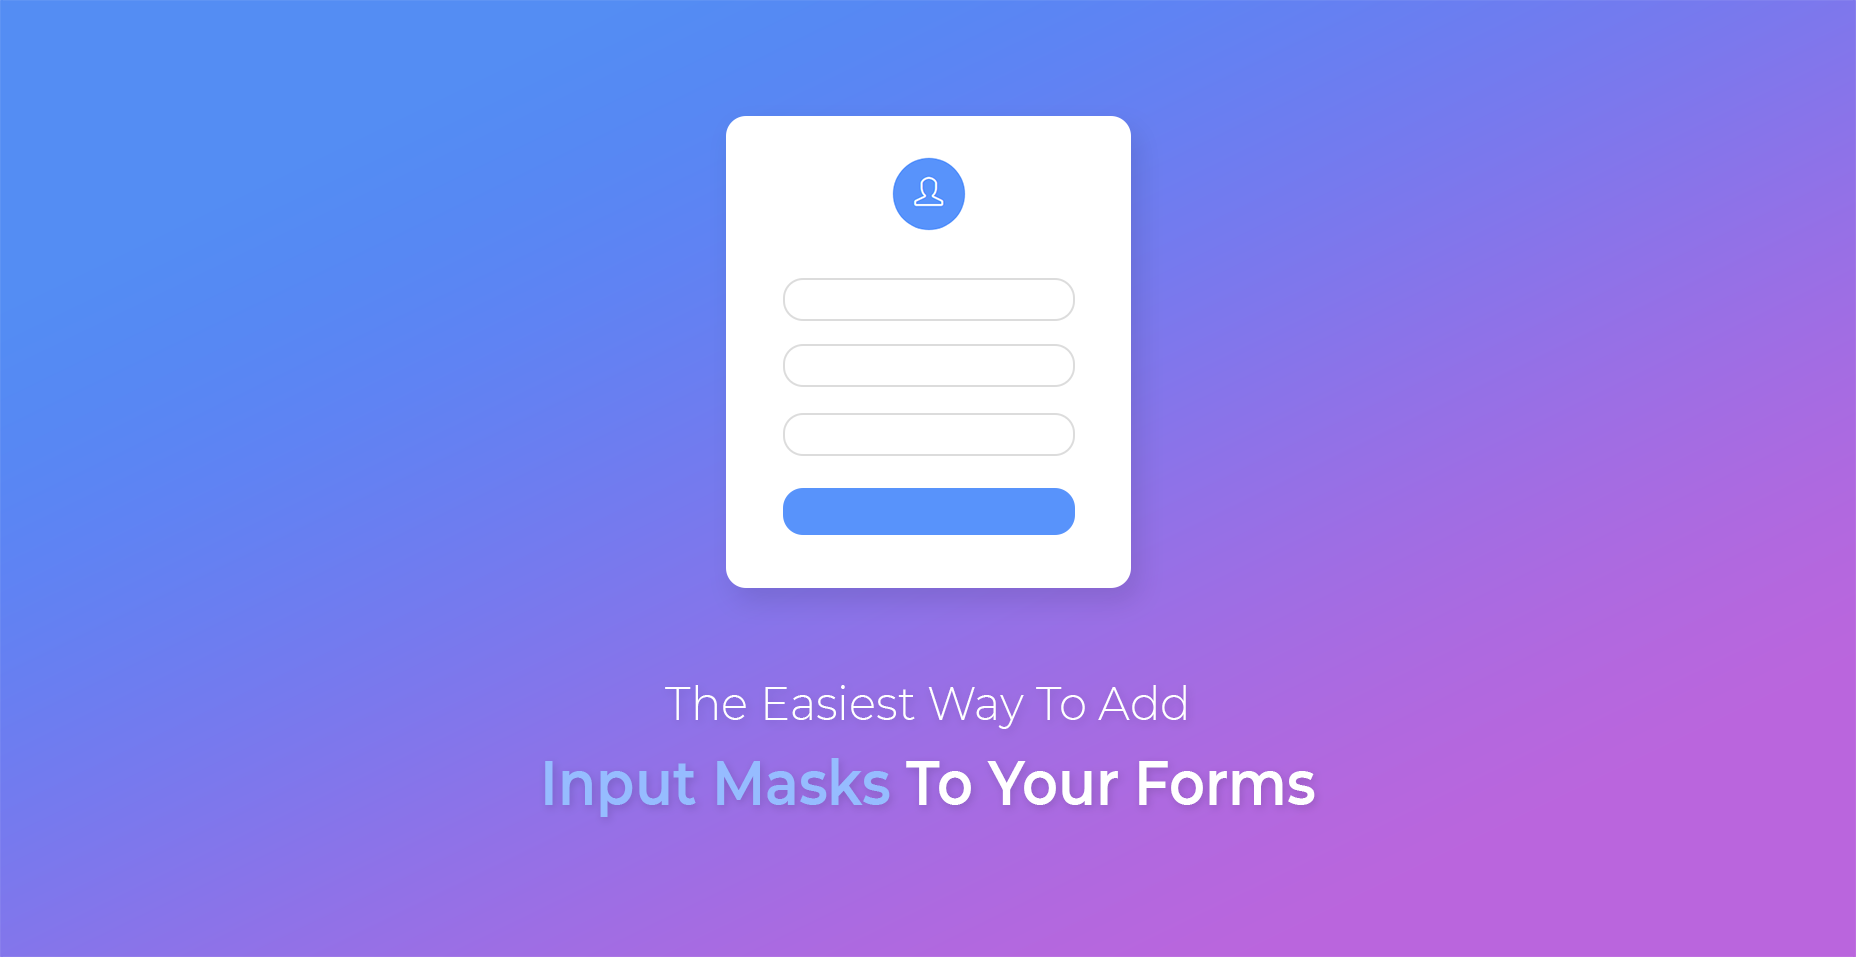 The Easiest Way To Add Input Masks To Your Forms - Tutorialzine